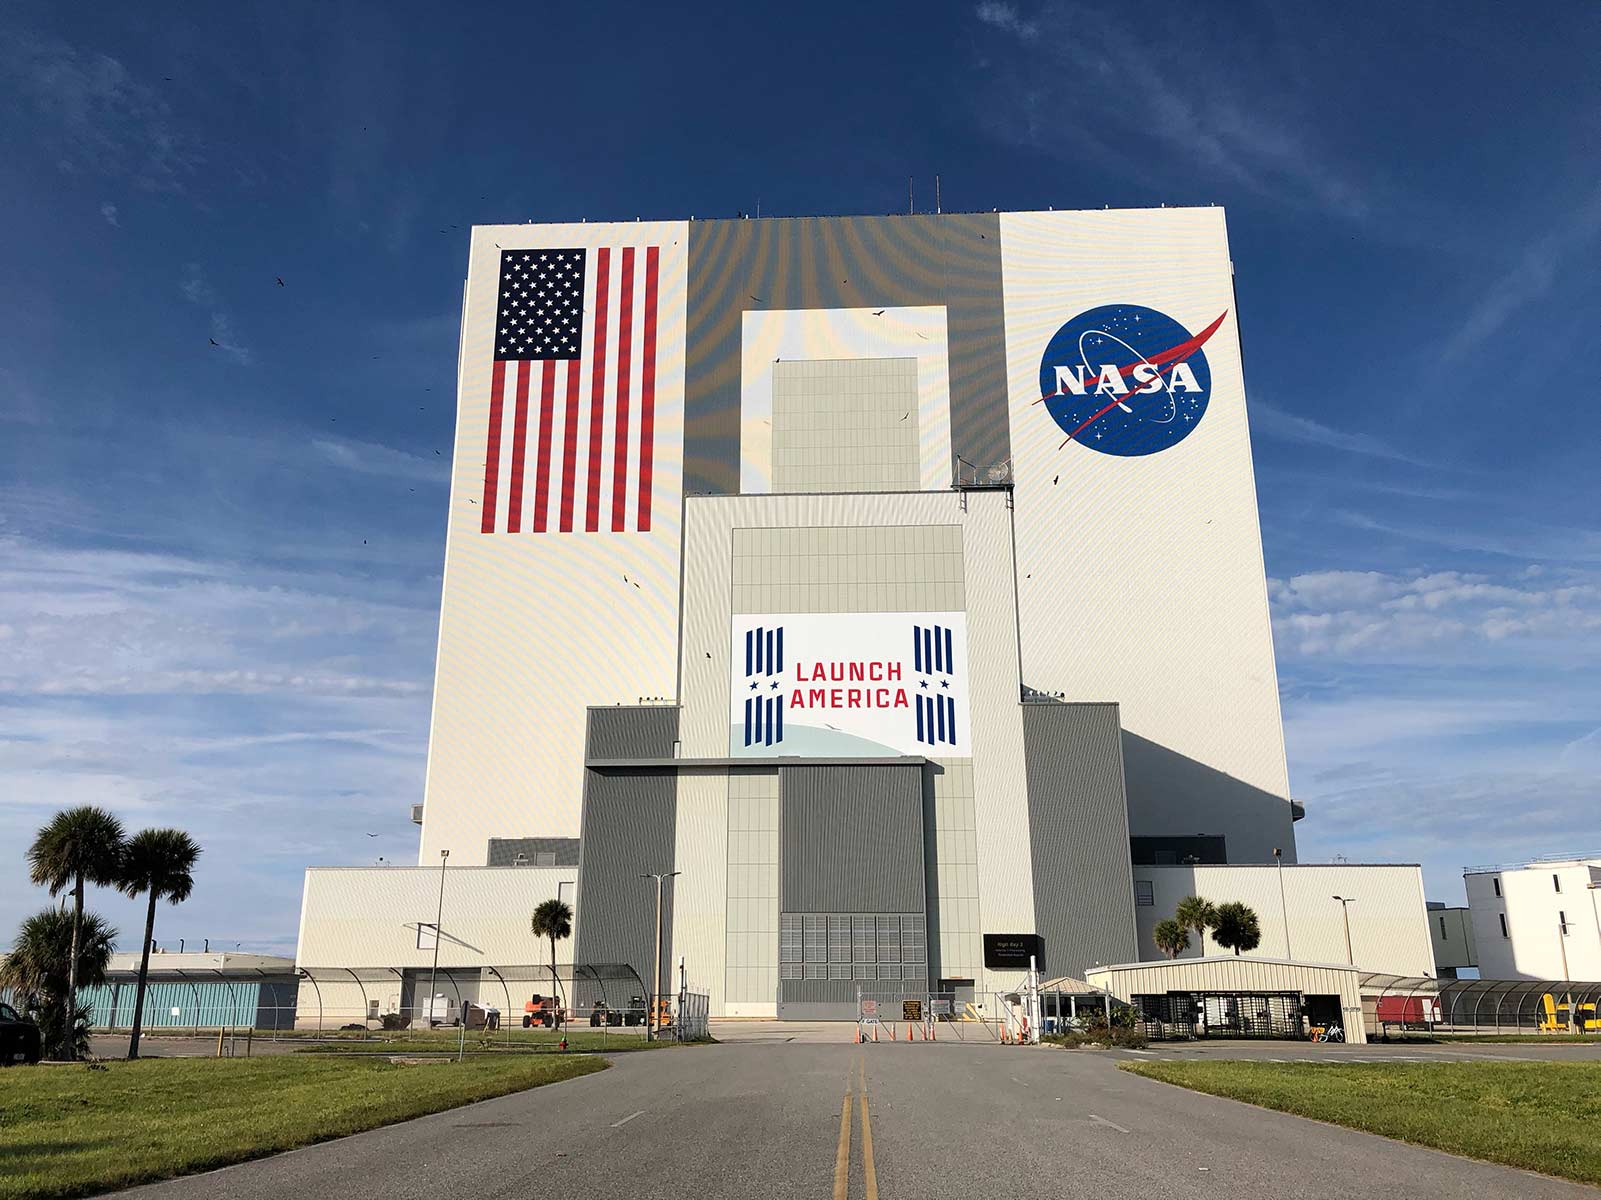 Launch America Logo on Building Exterior